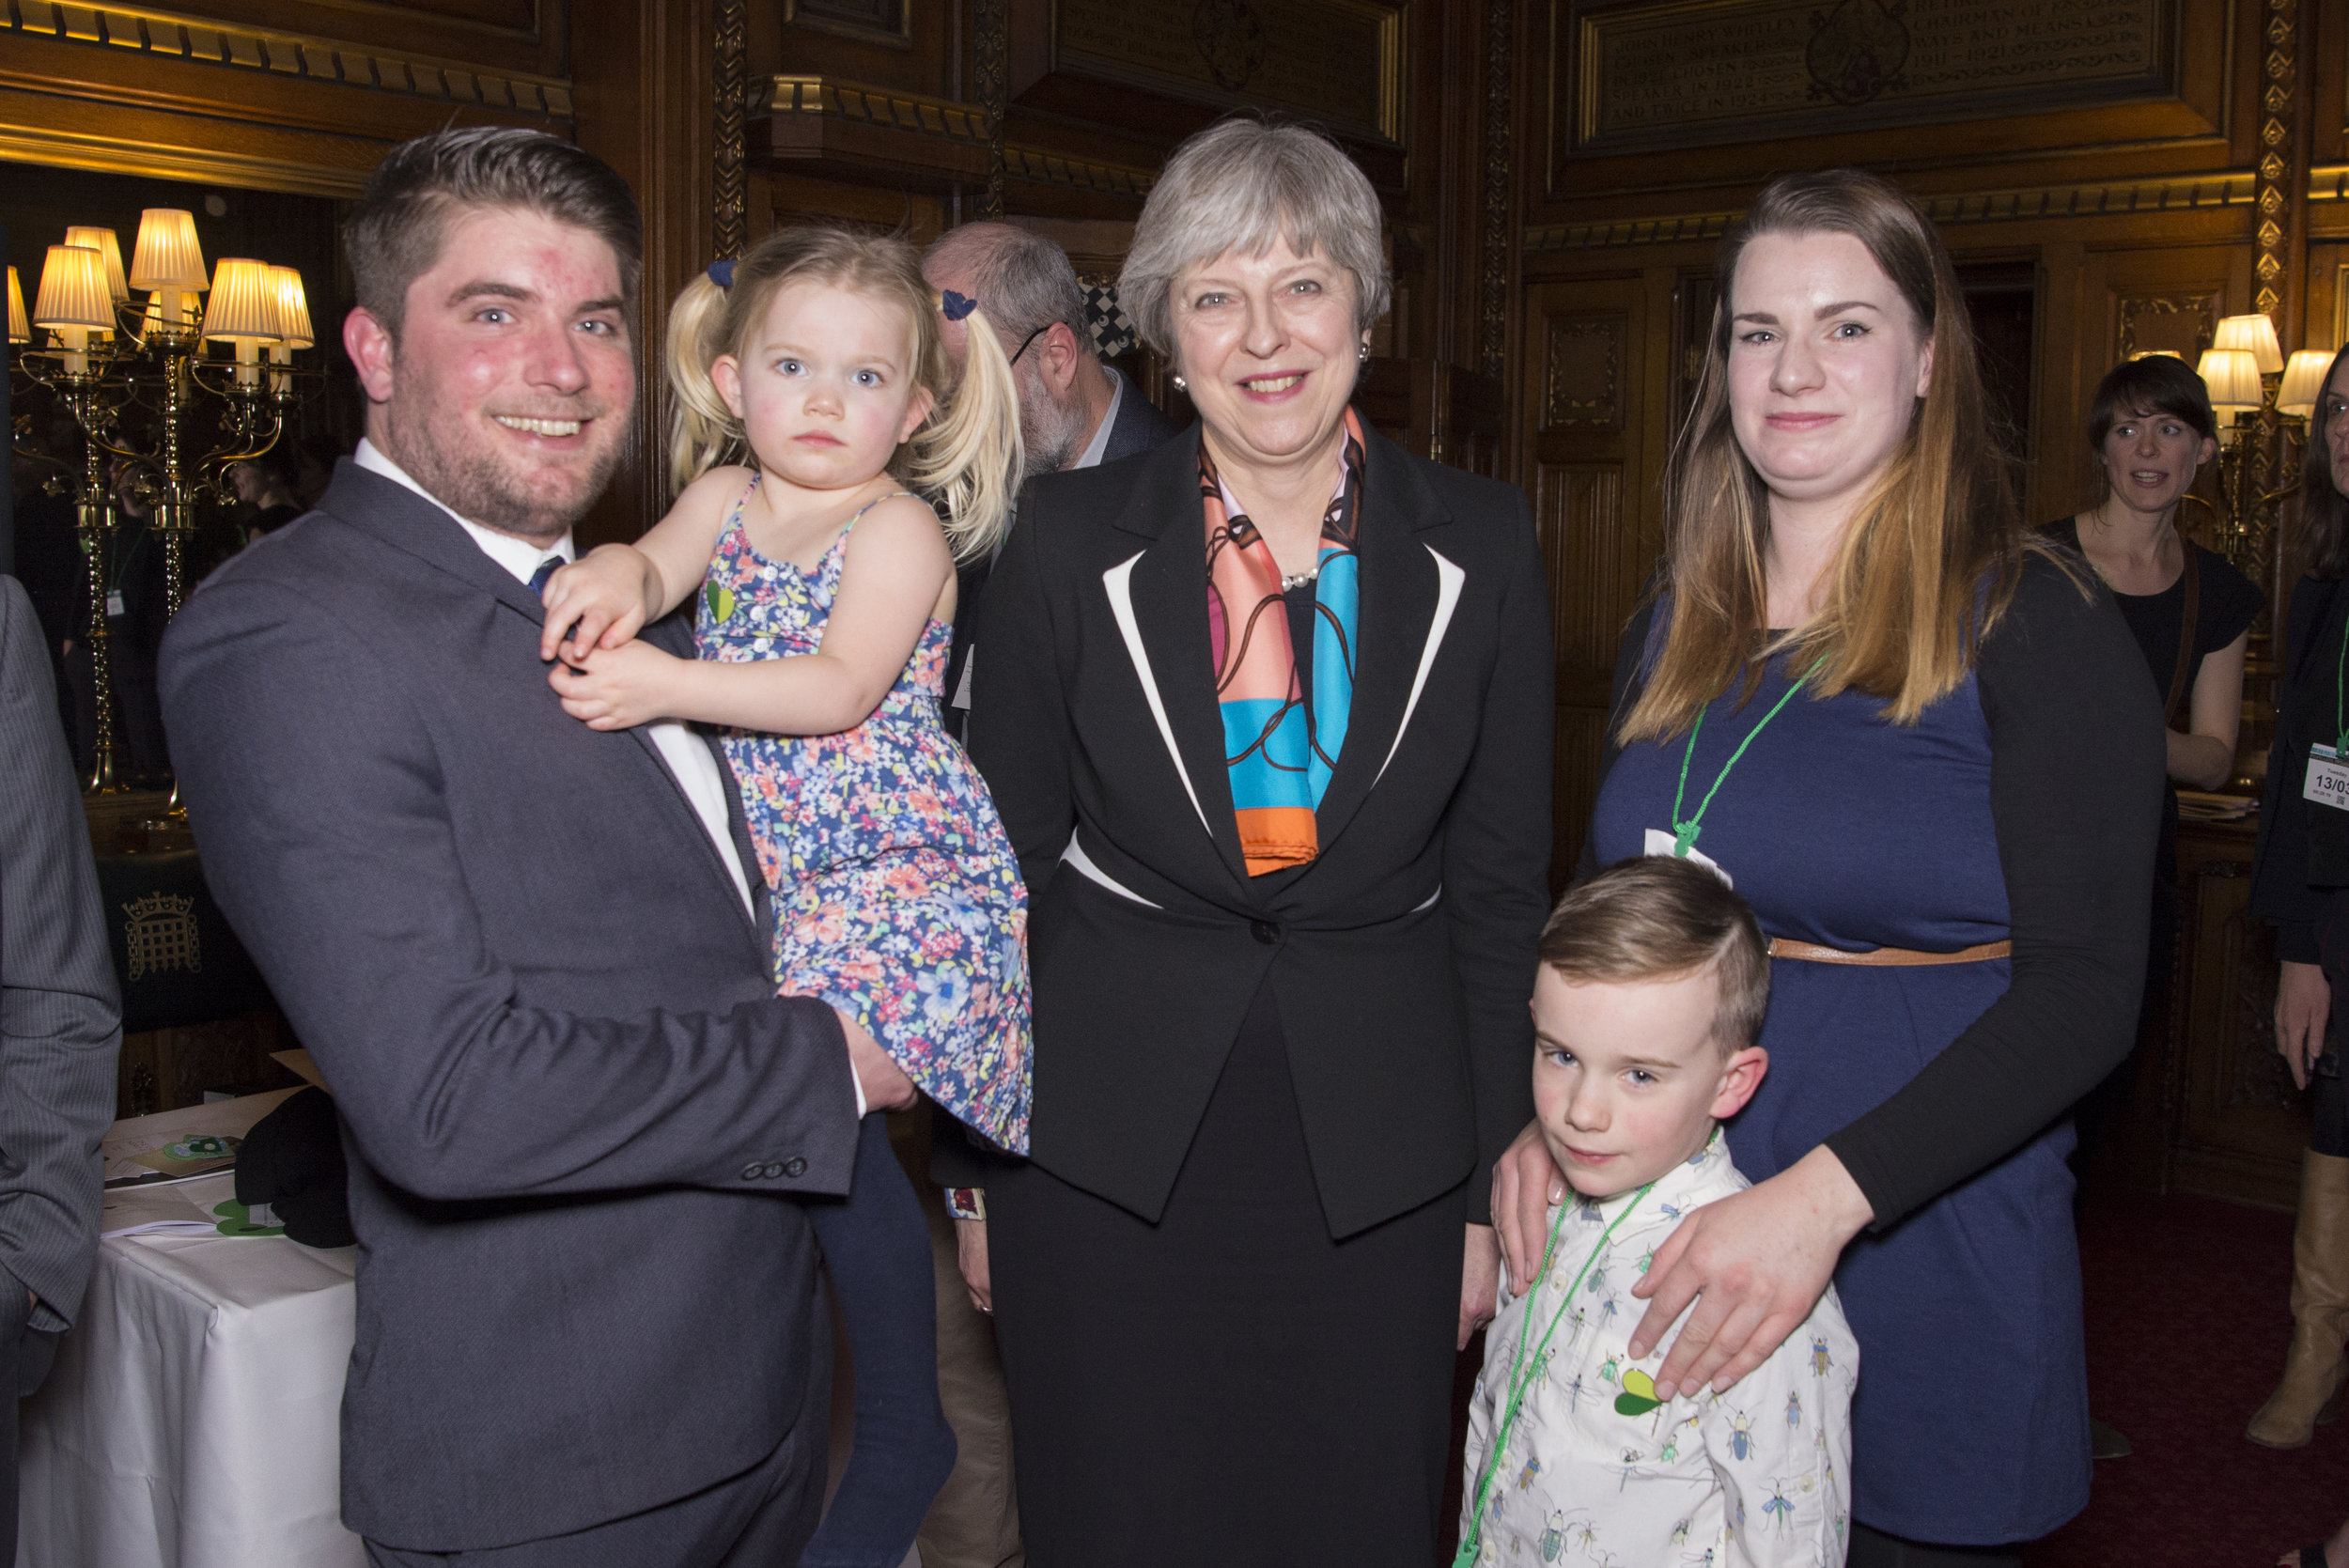 Theresa May with family at climate change awards parliamentary event (Heather Stuckey).jpg